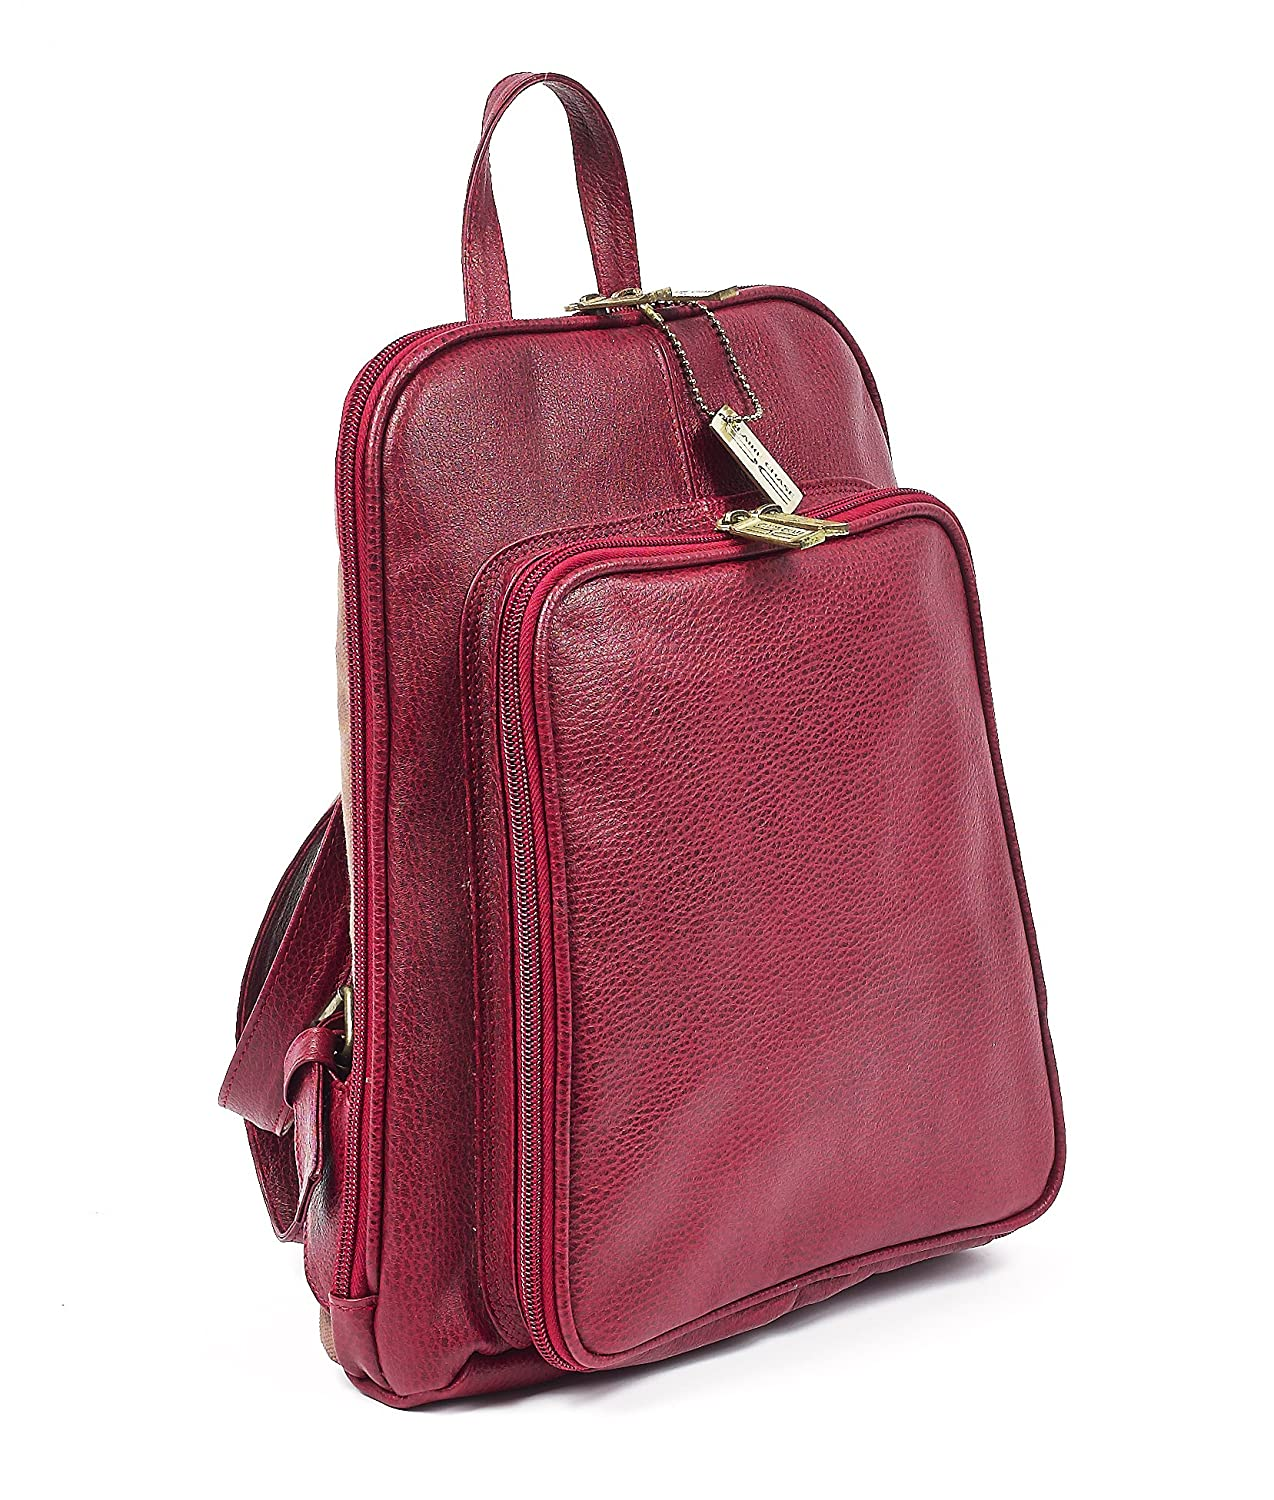 Claire Chase Tablet Backpack One Size Red